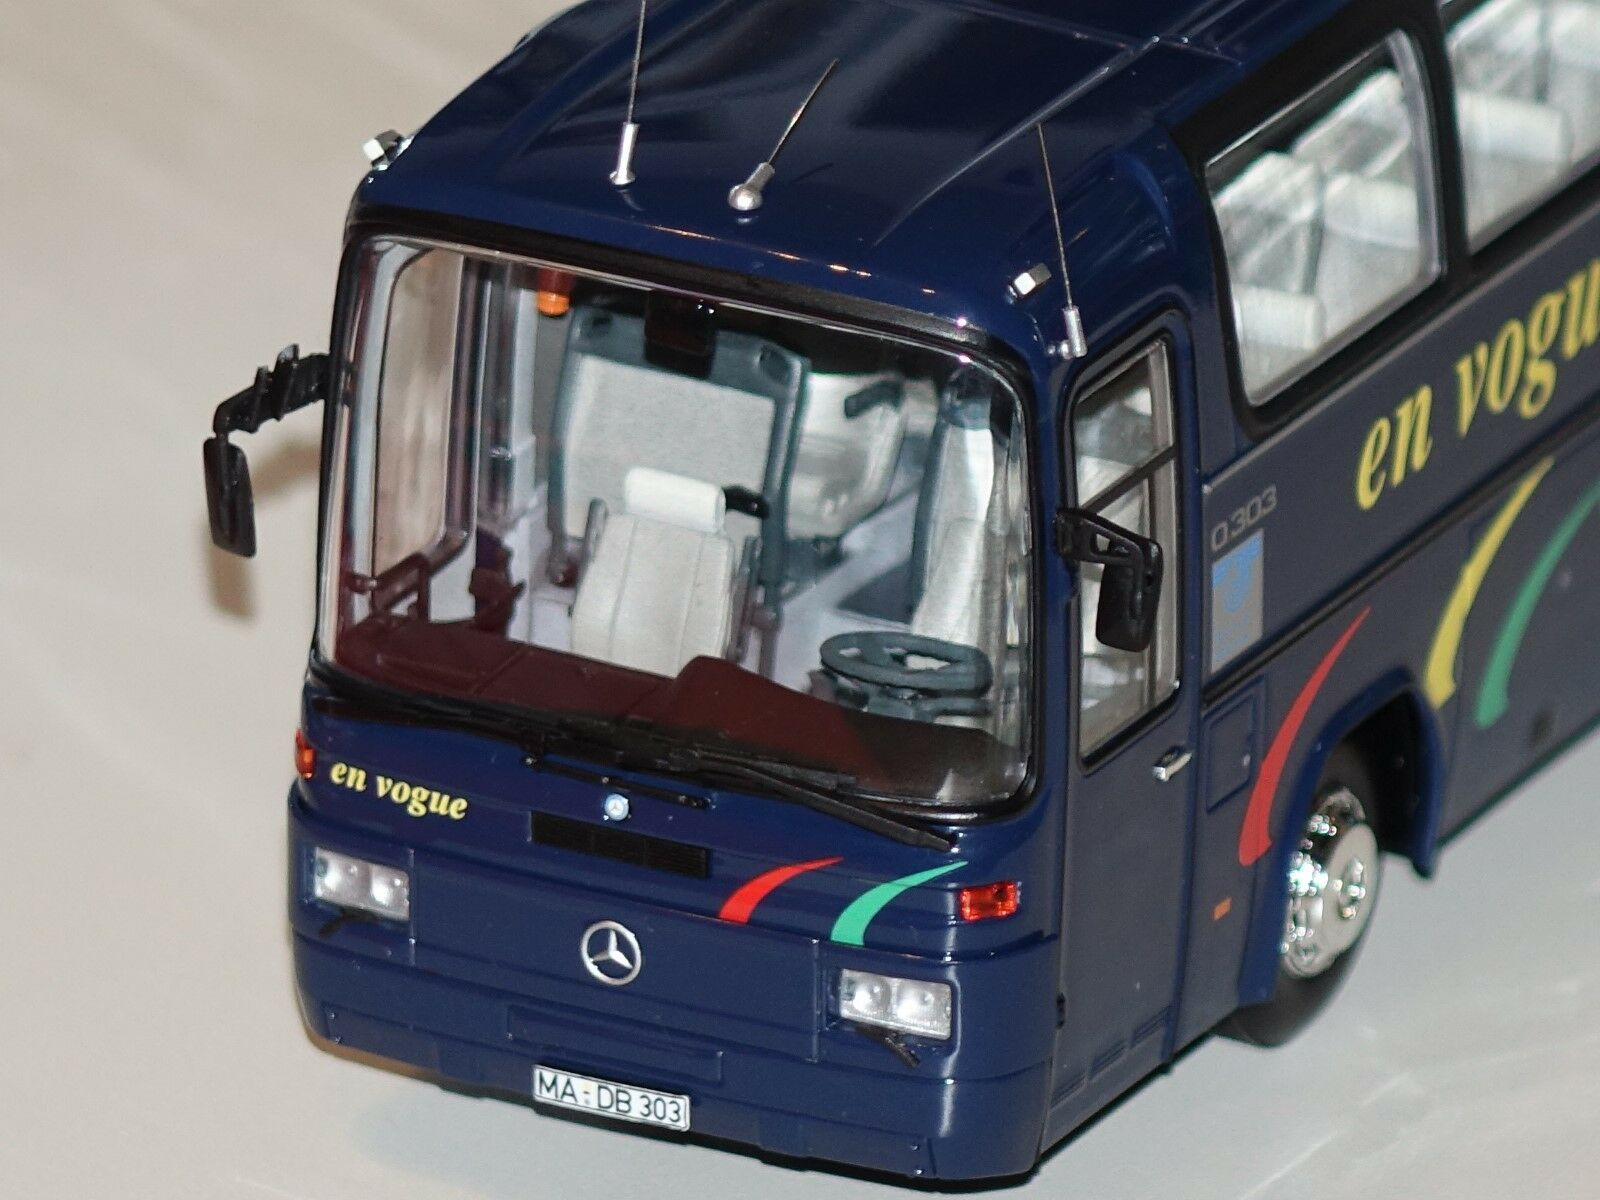 Mercedes o303 Bus 1981  En Vogue Dark bleu 1 43 Minichamps 439036081 nouveau & OVP  70% de réduction